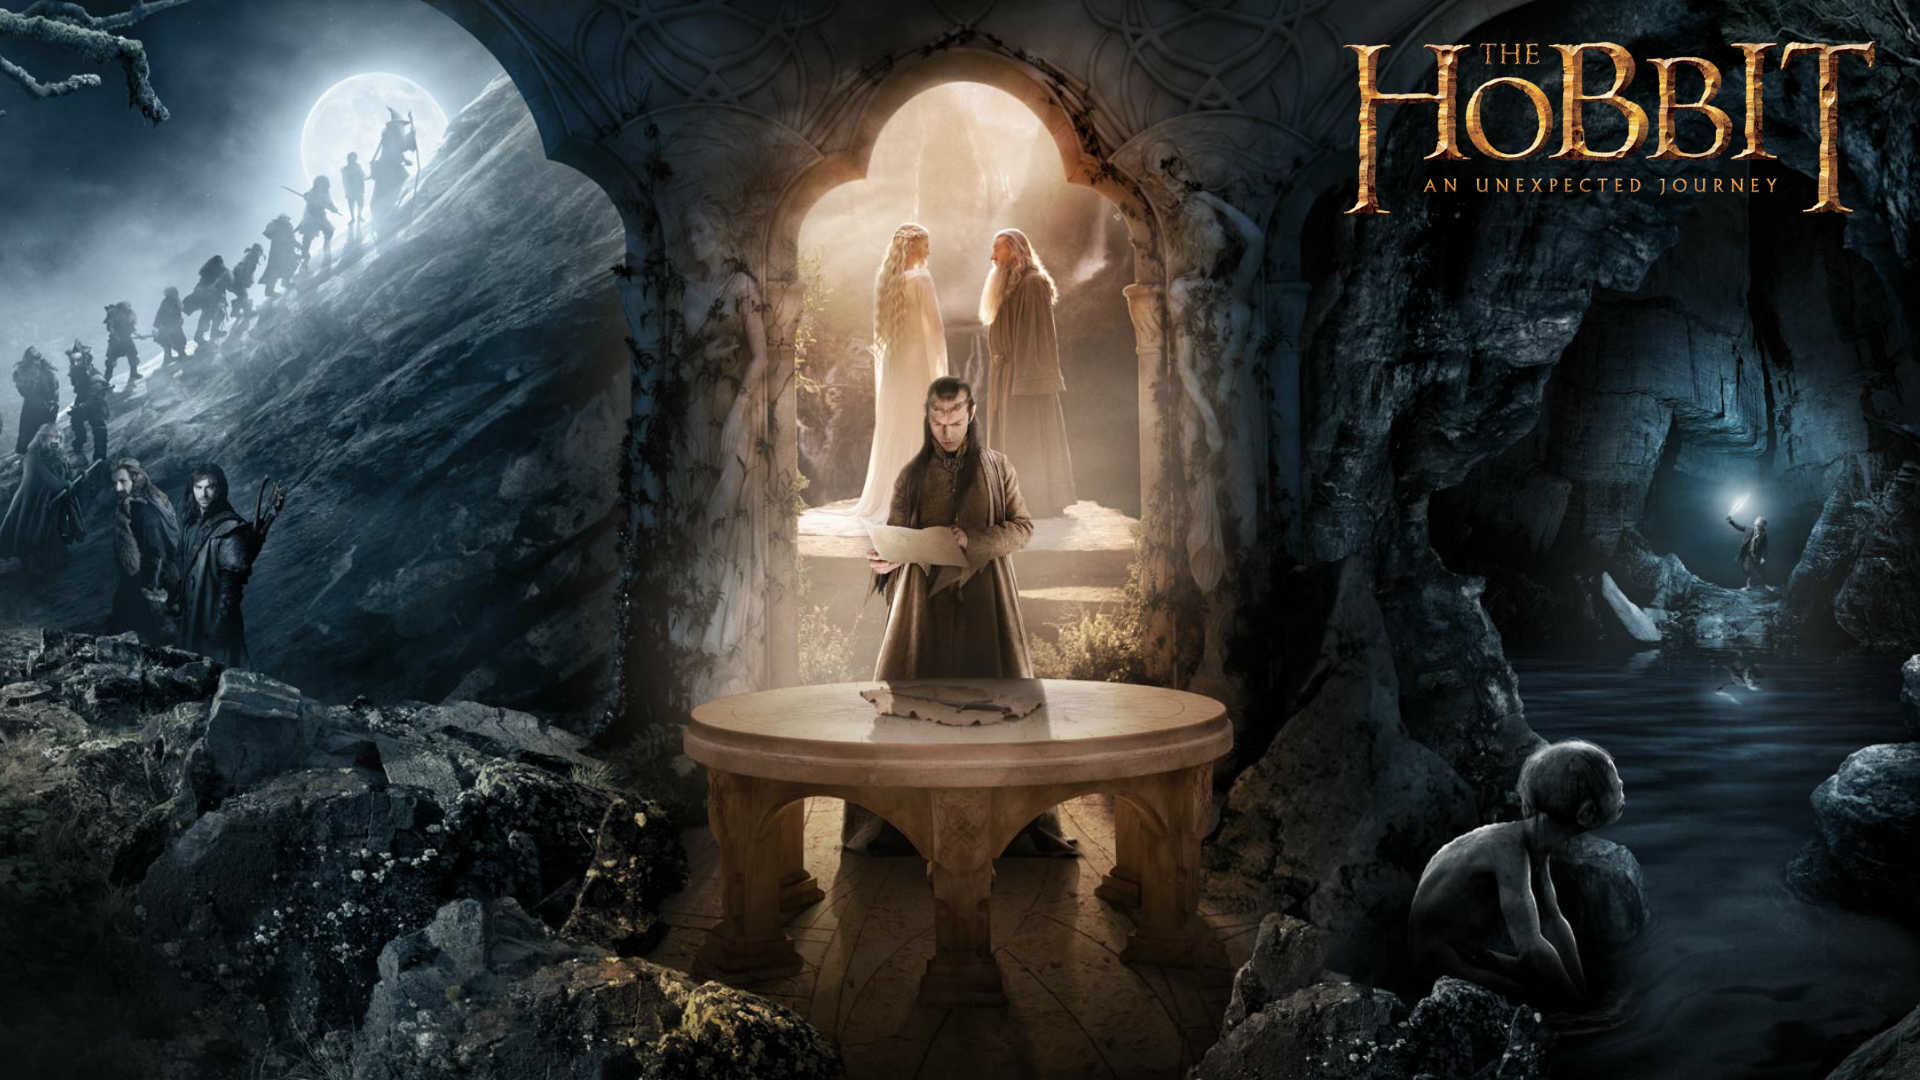 download The Hobbit 2012 movie free HD DVD ripped Screener 720p 1080p not! please help support them buy original or view stream online cheap starting at $1